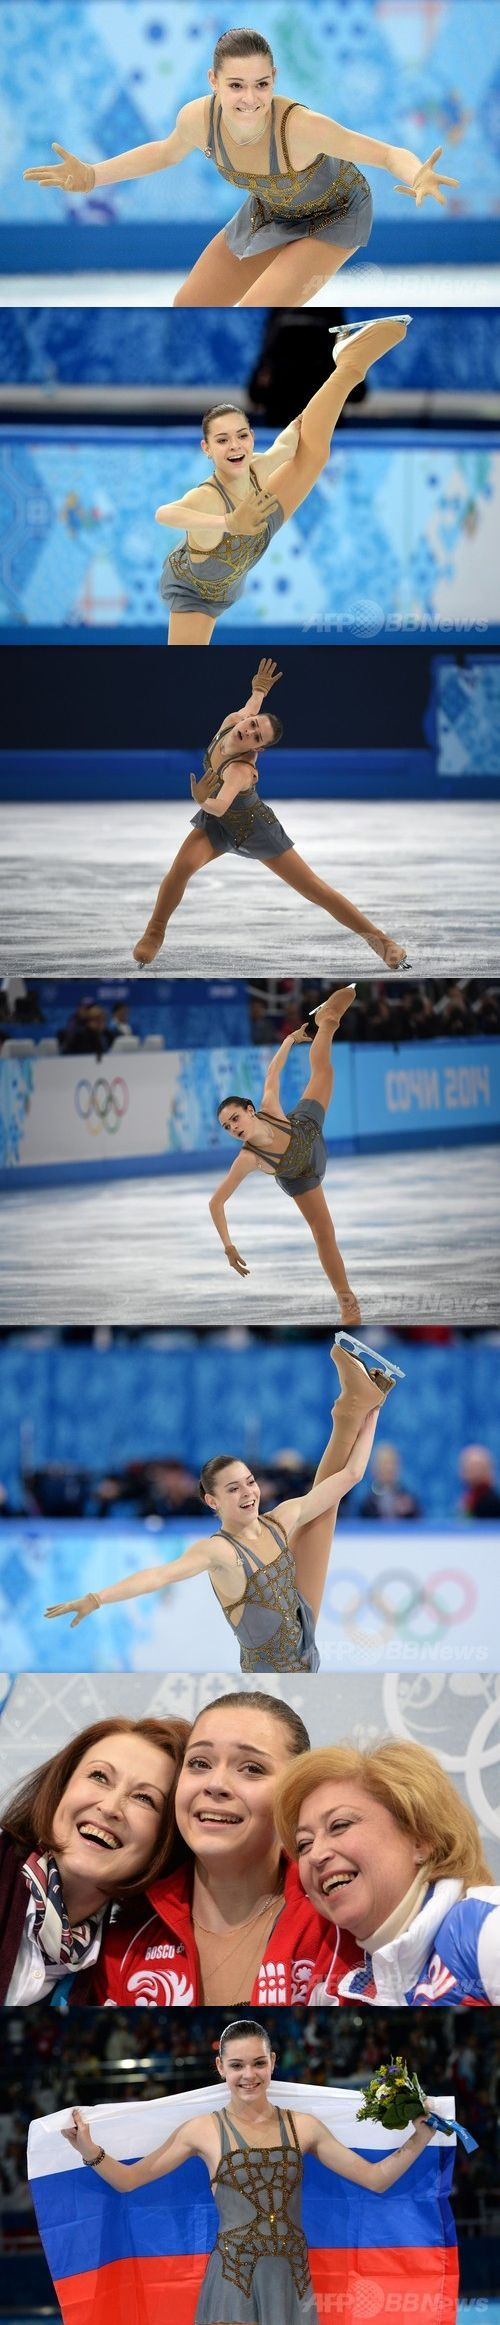 Adelina Sotinikova's GOLD MEDAL PERFORMANCE. 2014 Olympic Ladies' Figure Skating in Sochi, Russia. She held the entire world captive by her historical free skate!